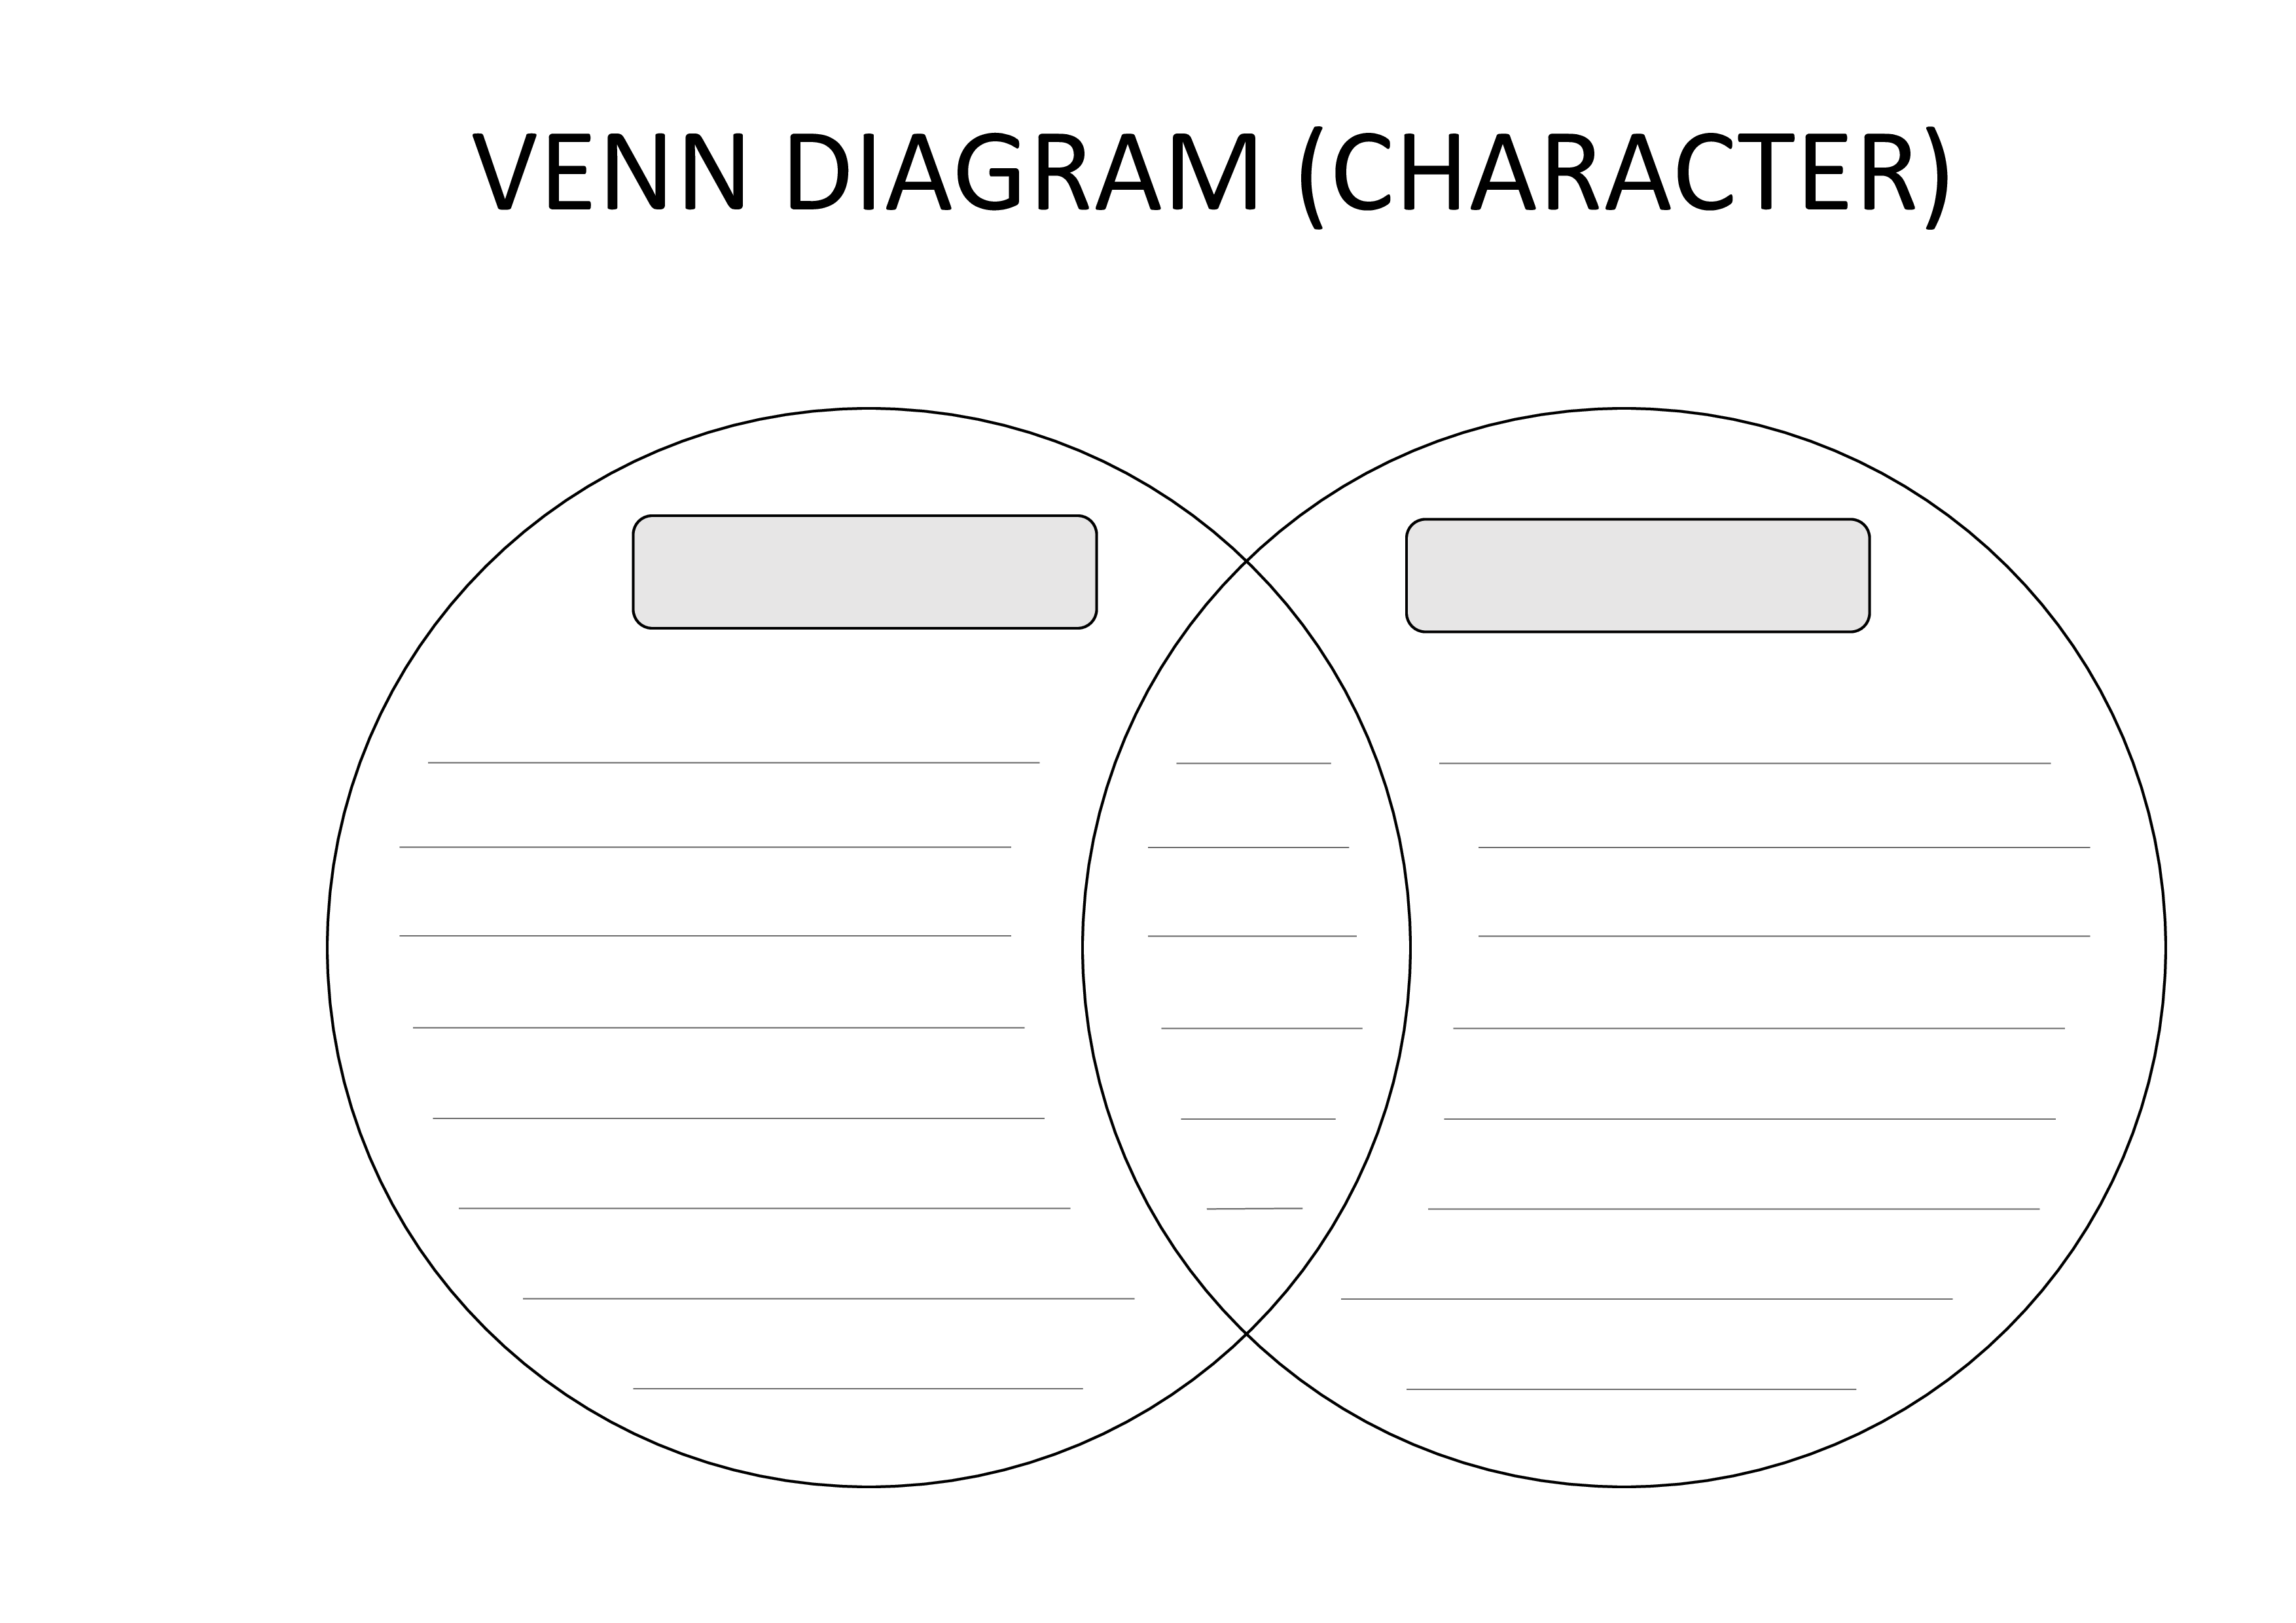 Free venn diagram template with lining templates at venn diagram template with lining main image pooptronica